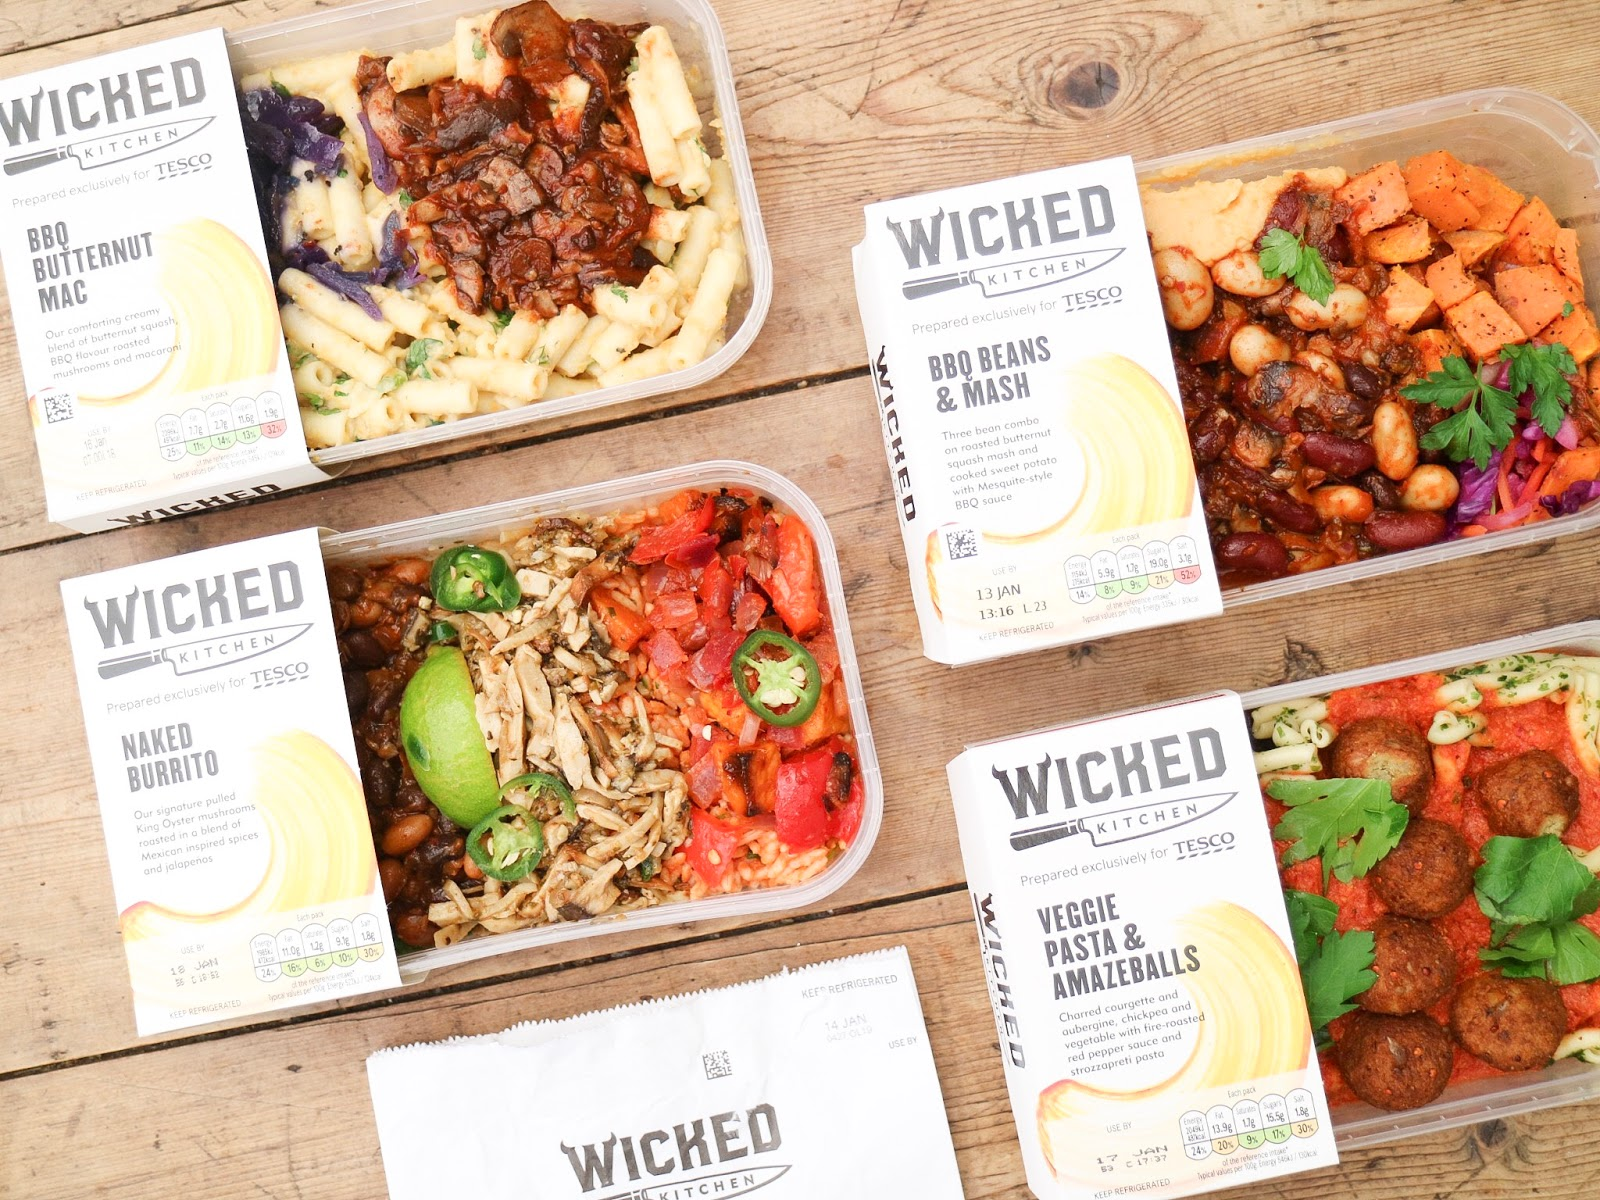 Wicked Kitchen Plant Based Food Range at Tesco